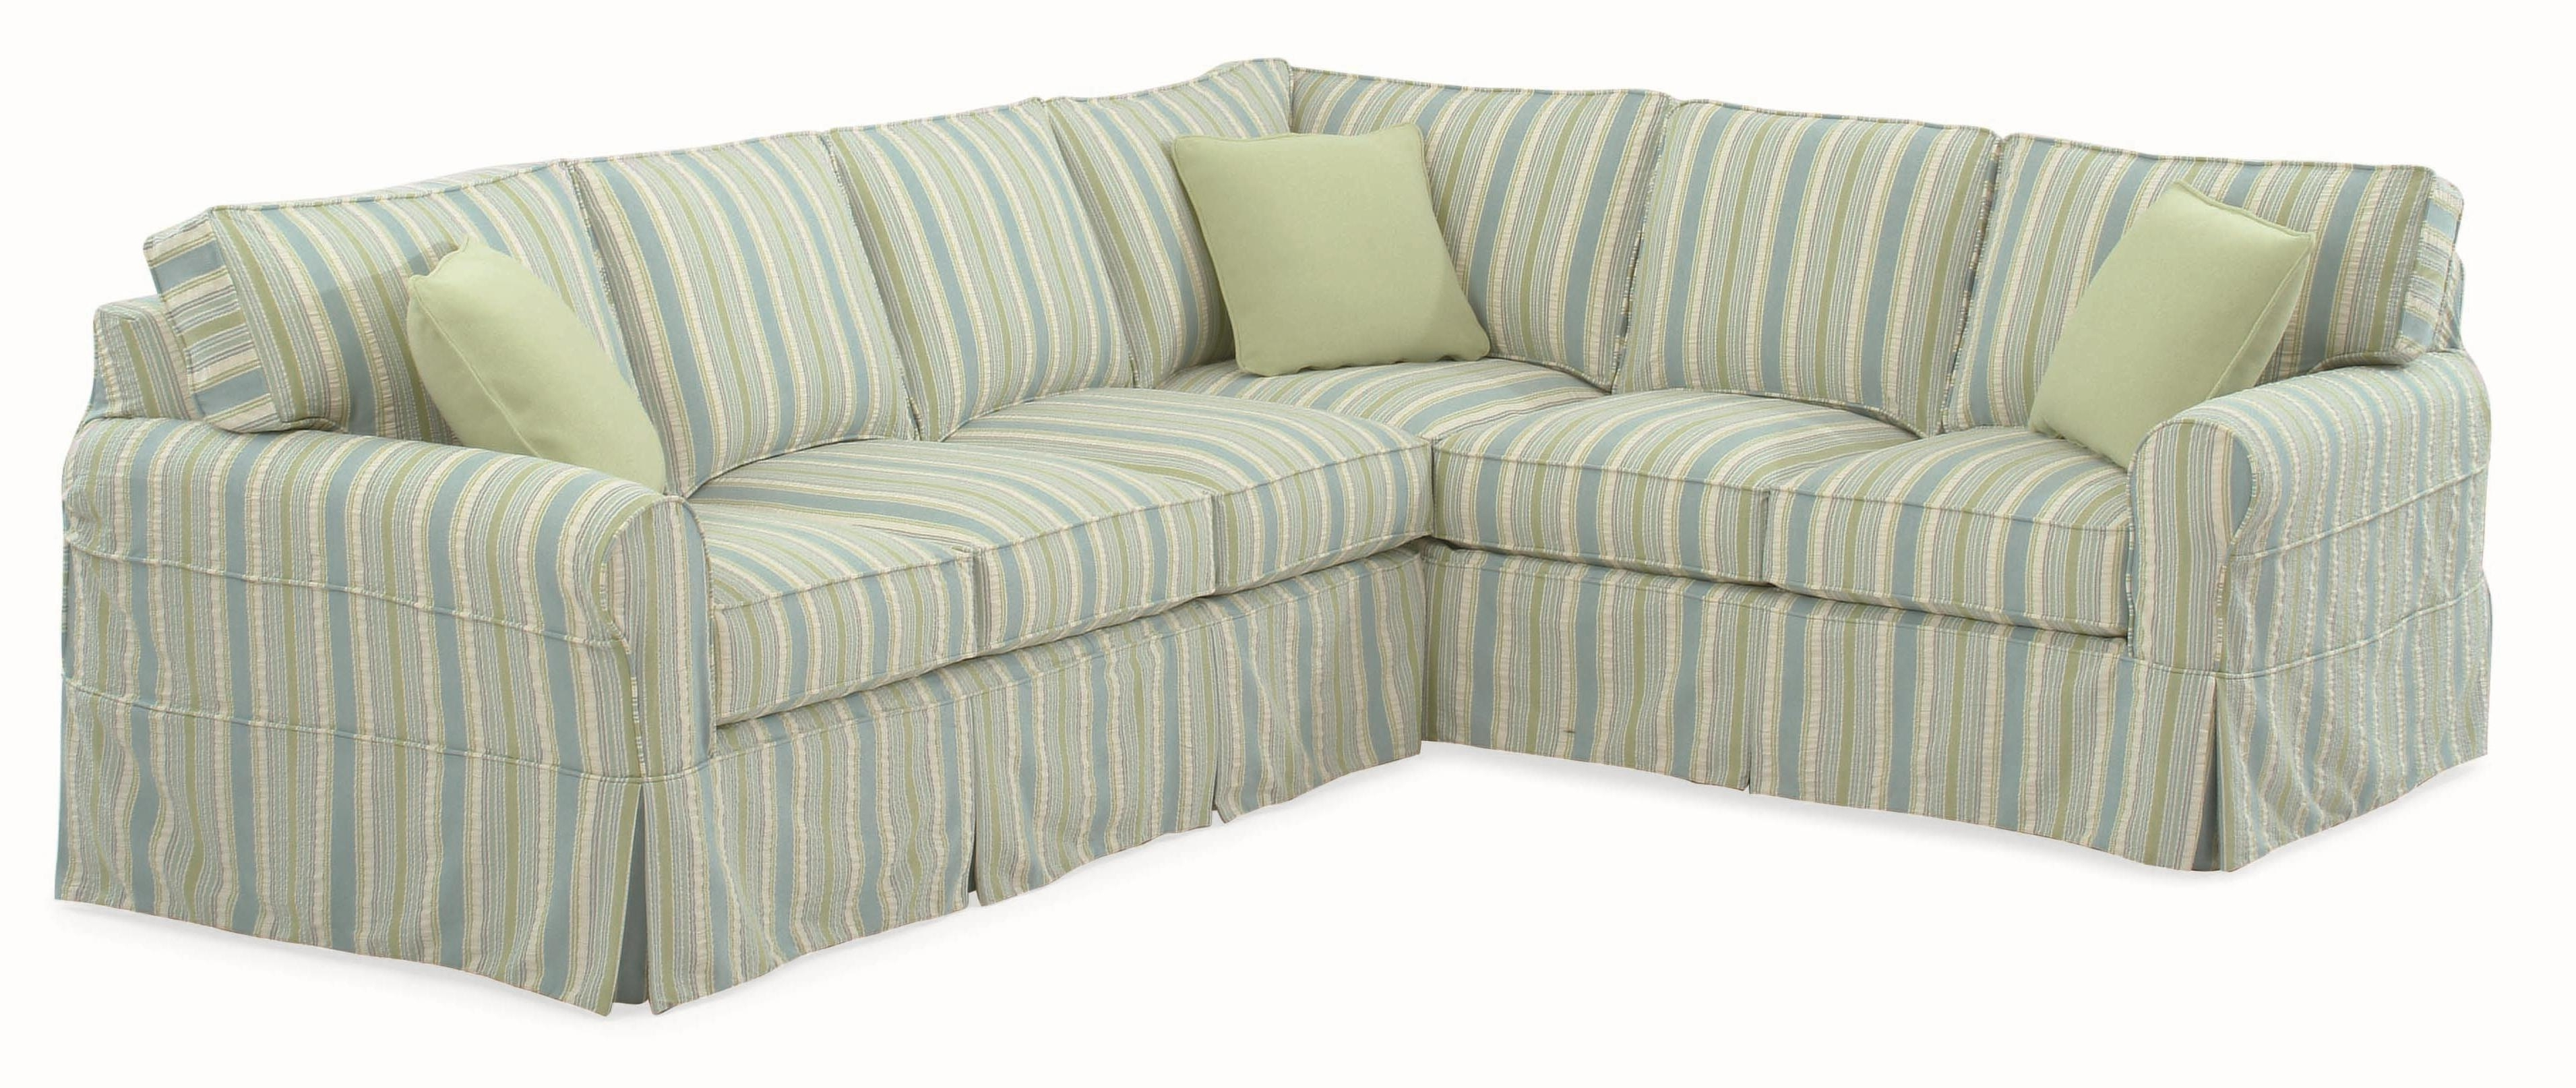 Sectional Sofa Slipcovers (View 11 of 15)